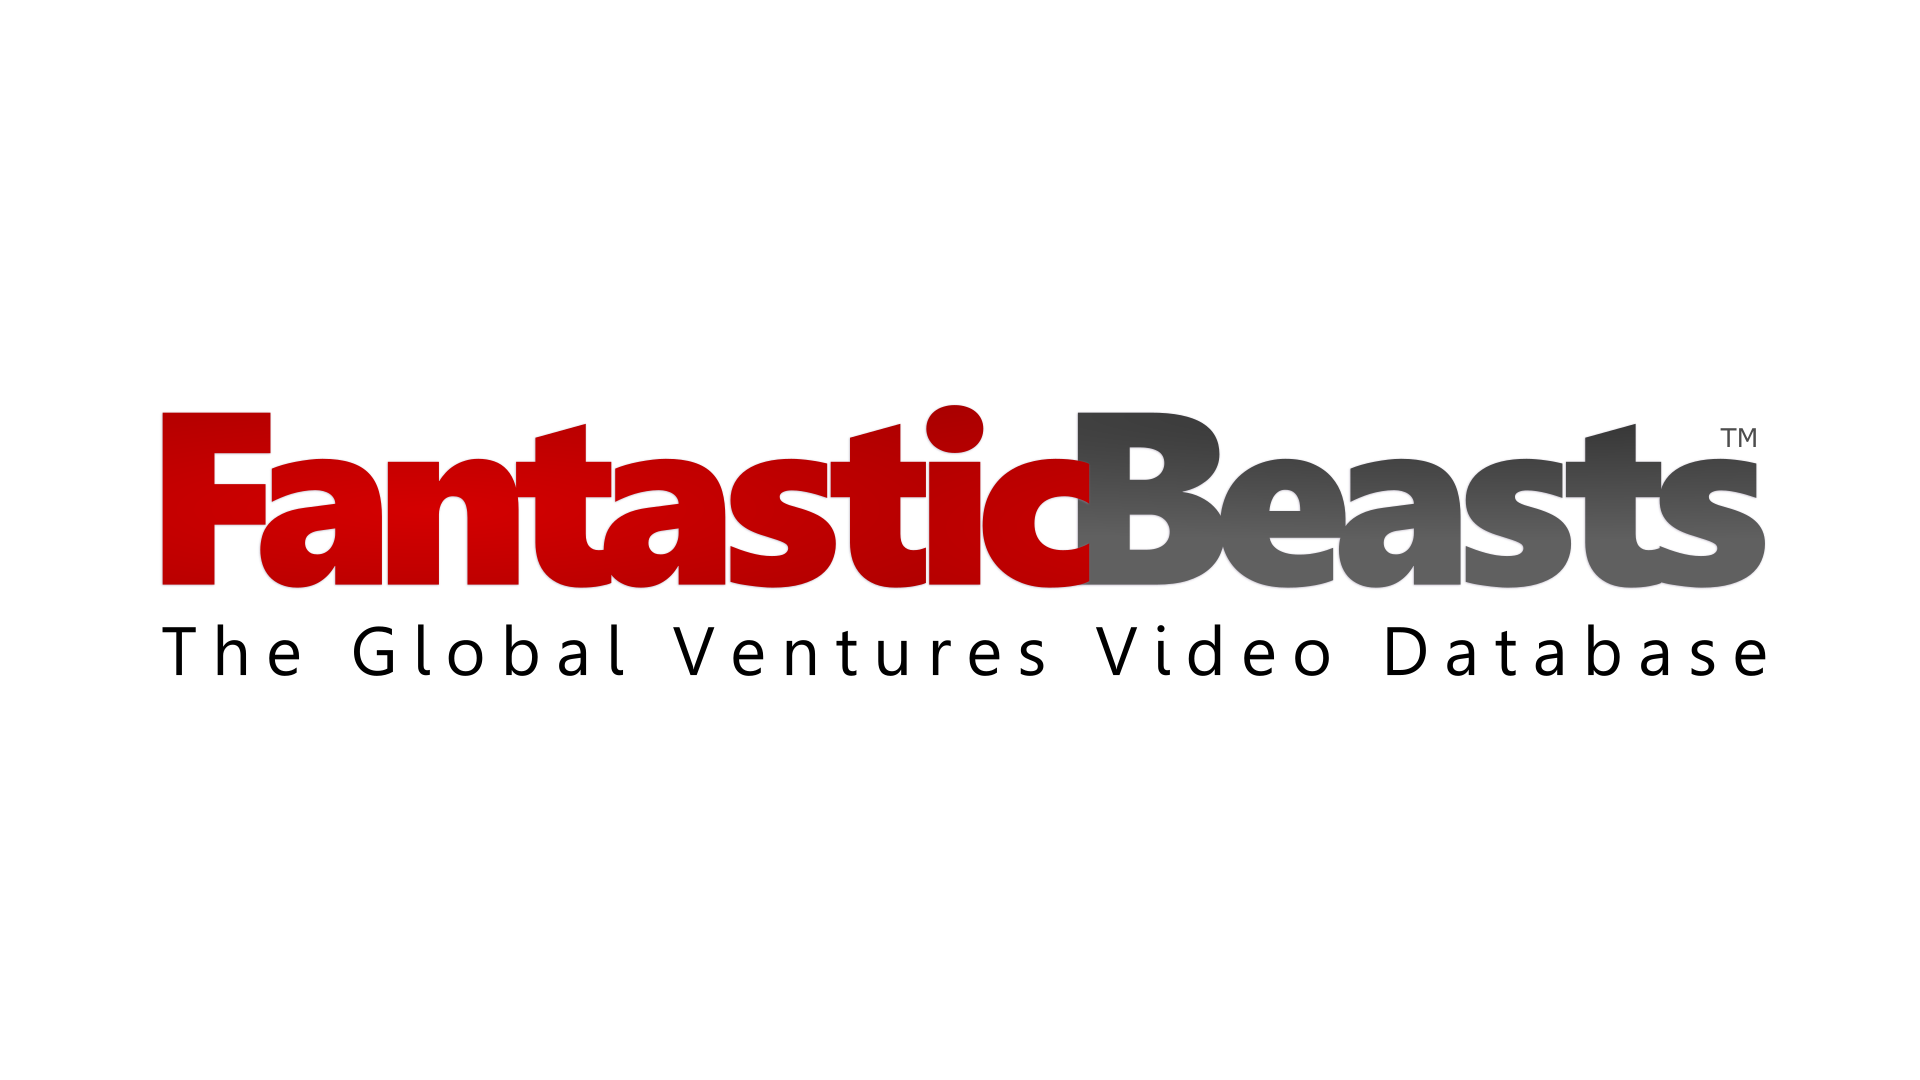 Fantastic Beasts TV launches awareness drive for Media & Entertainment businesses